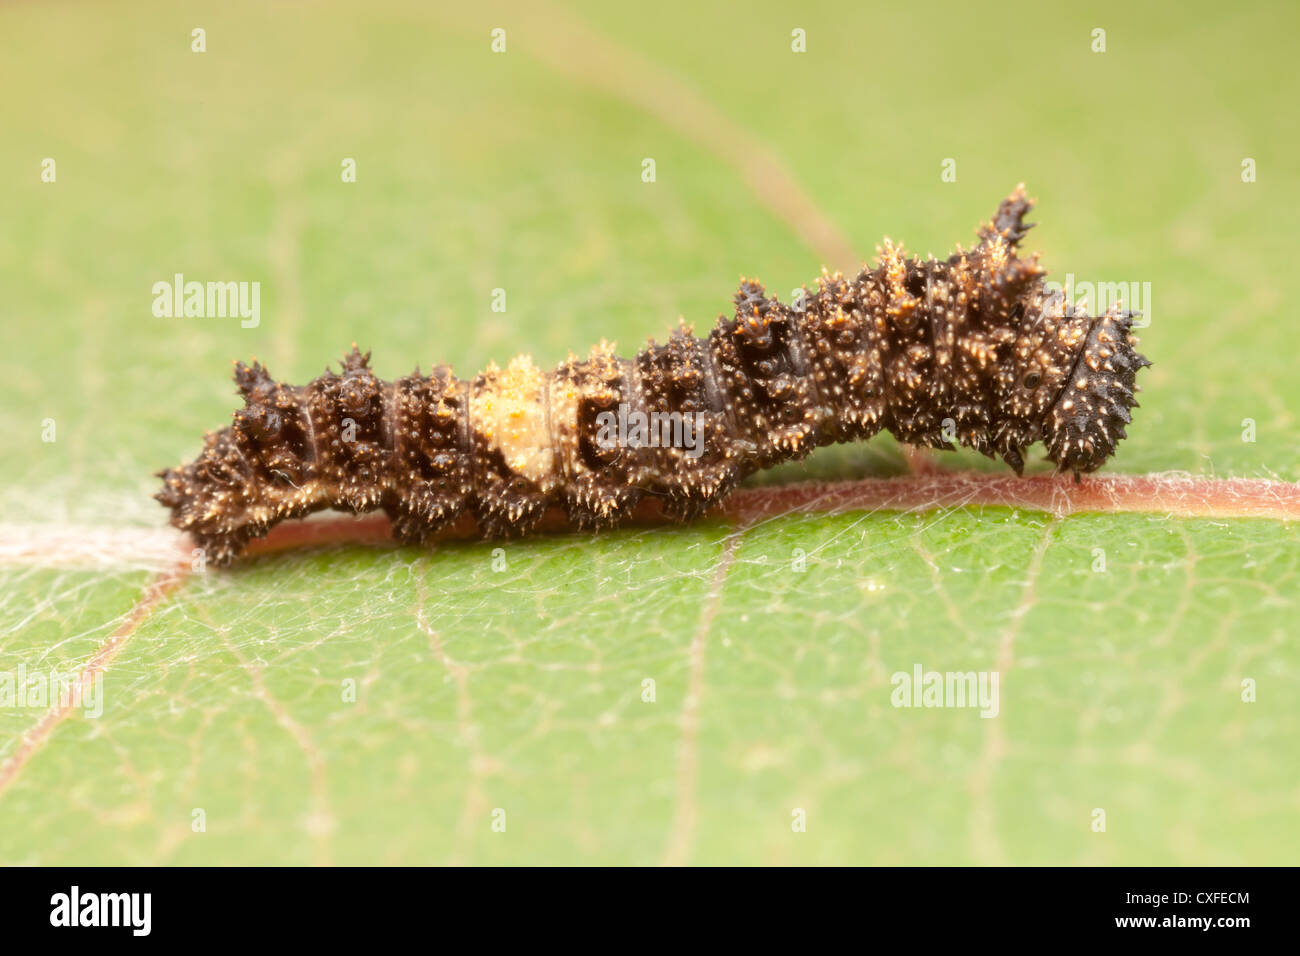 A Viceroy Butterfly (Limenitis archippus) early instar caterpillar (larva), which mimics a bird dropping, on a Cottonwood - Stock Image